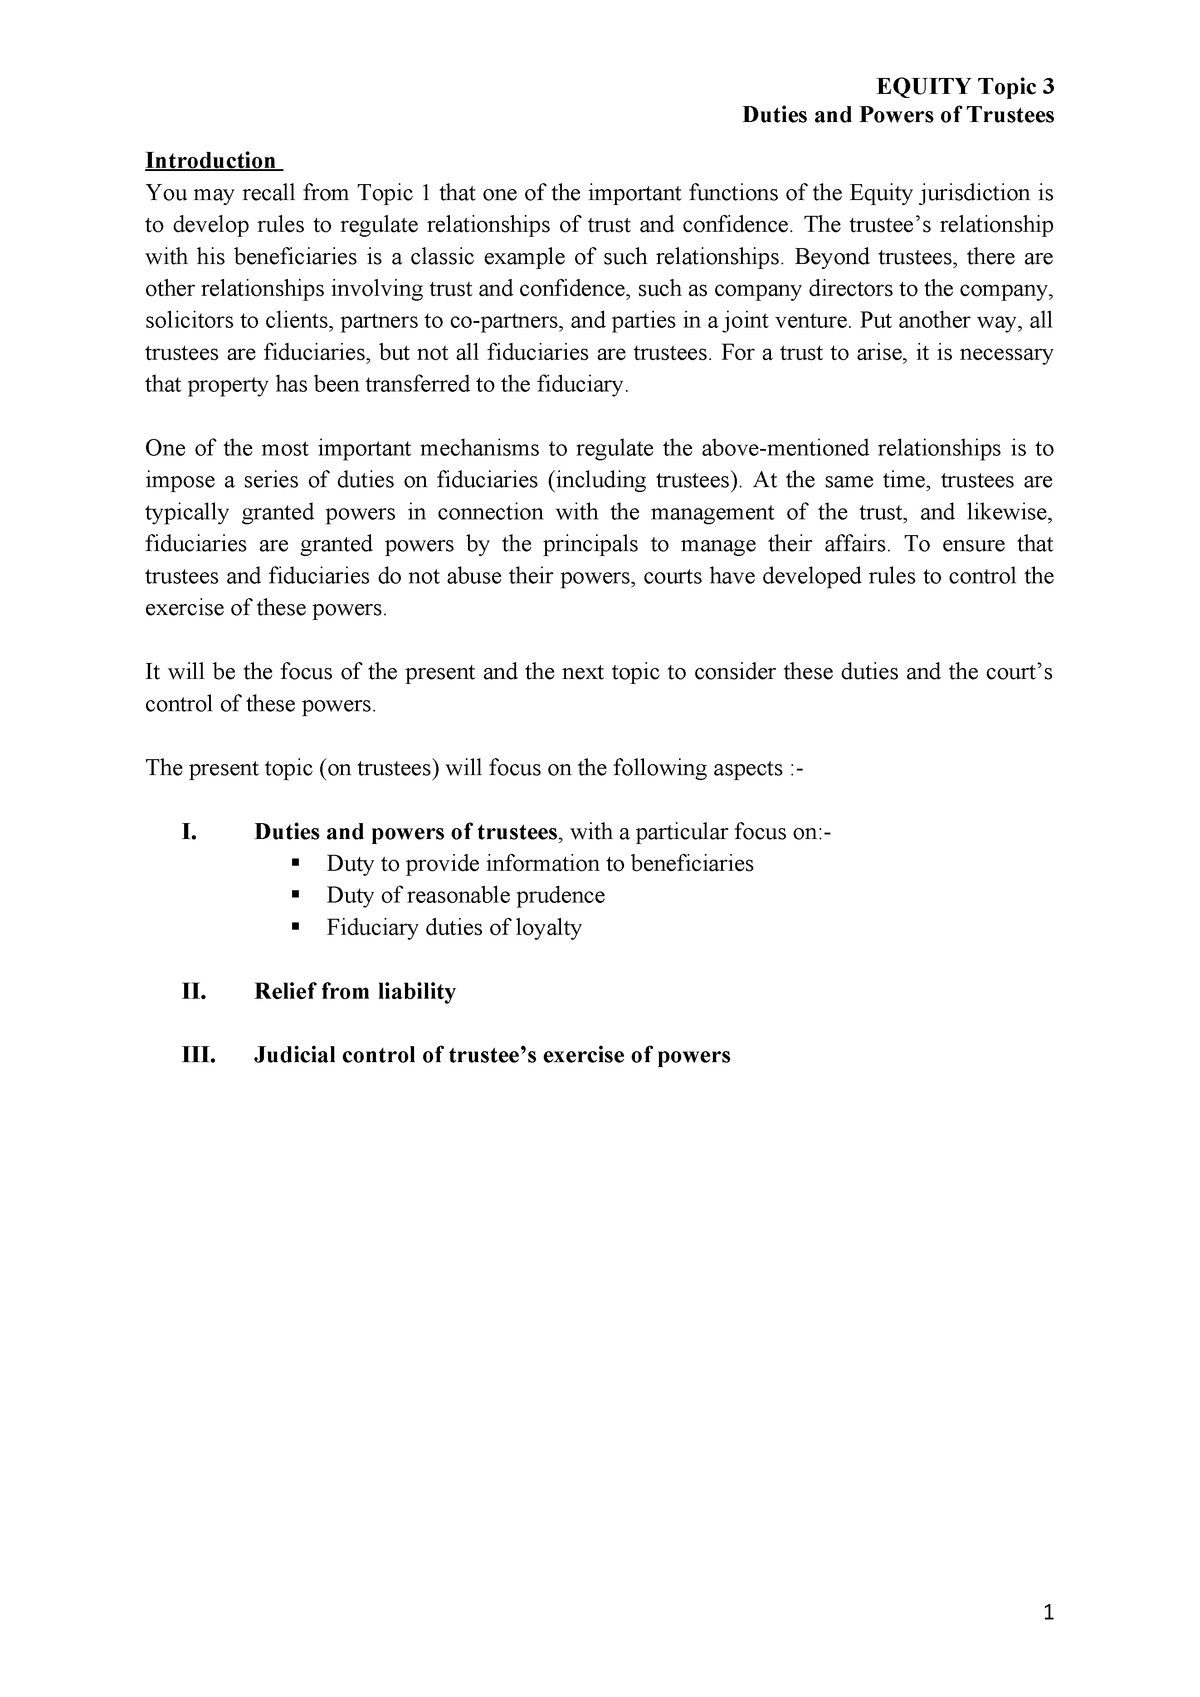 Equity Lecture Topic 3 Duties and Powers of Trustees - HKU